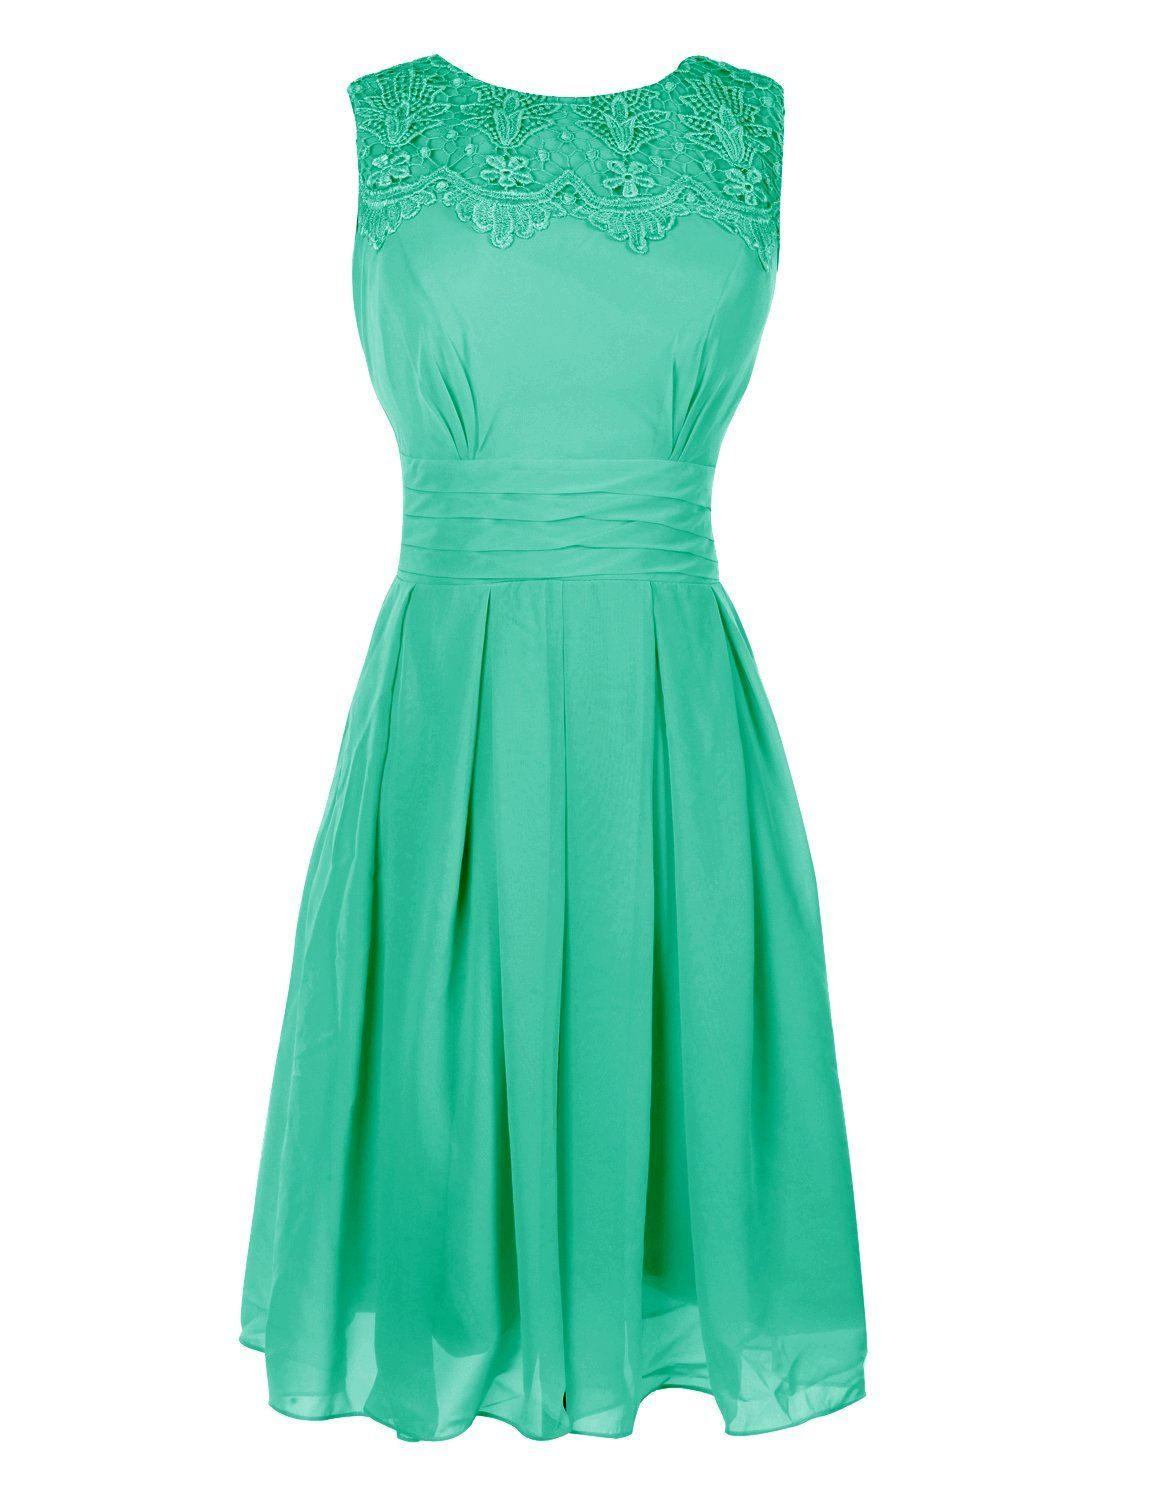 Melantha Best Buy Short Prom, Bridesmaid, Cocktail, Party Dress For ...